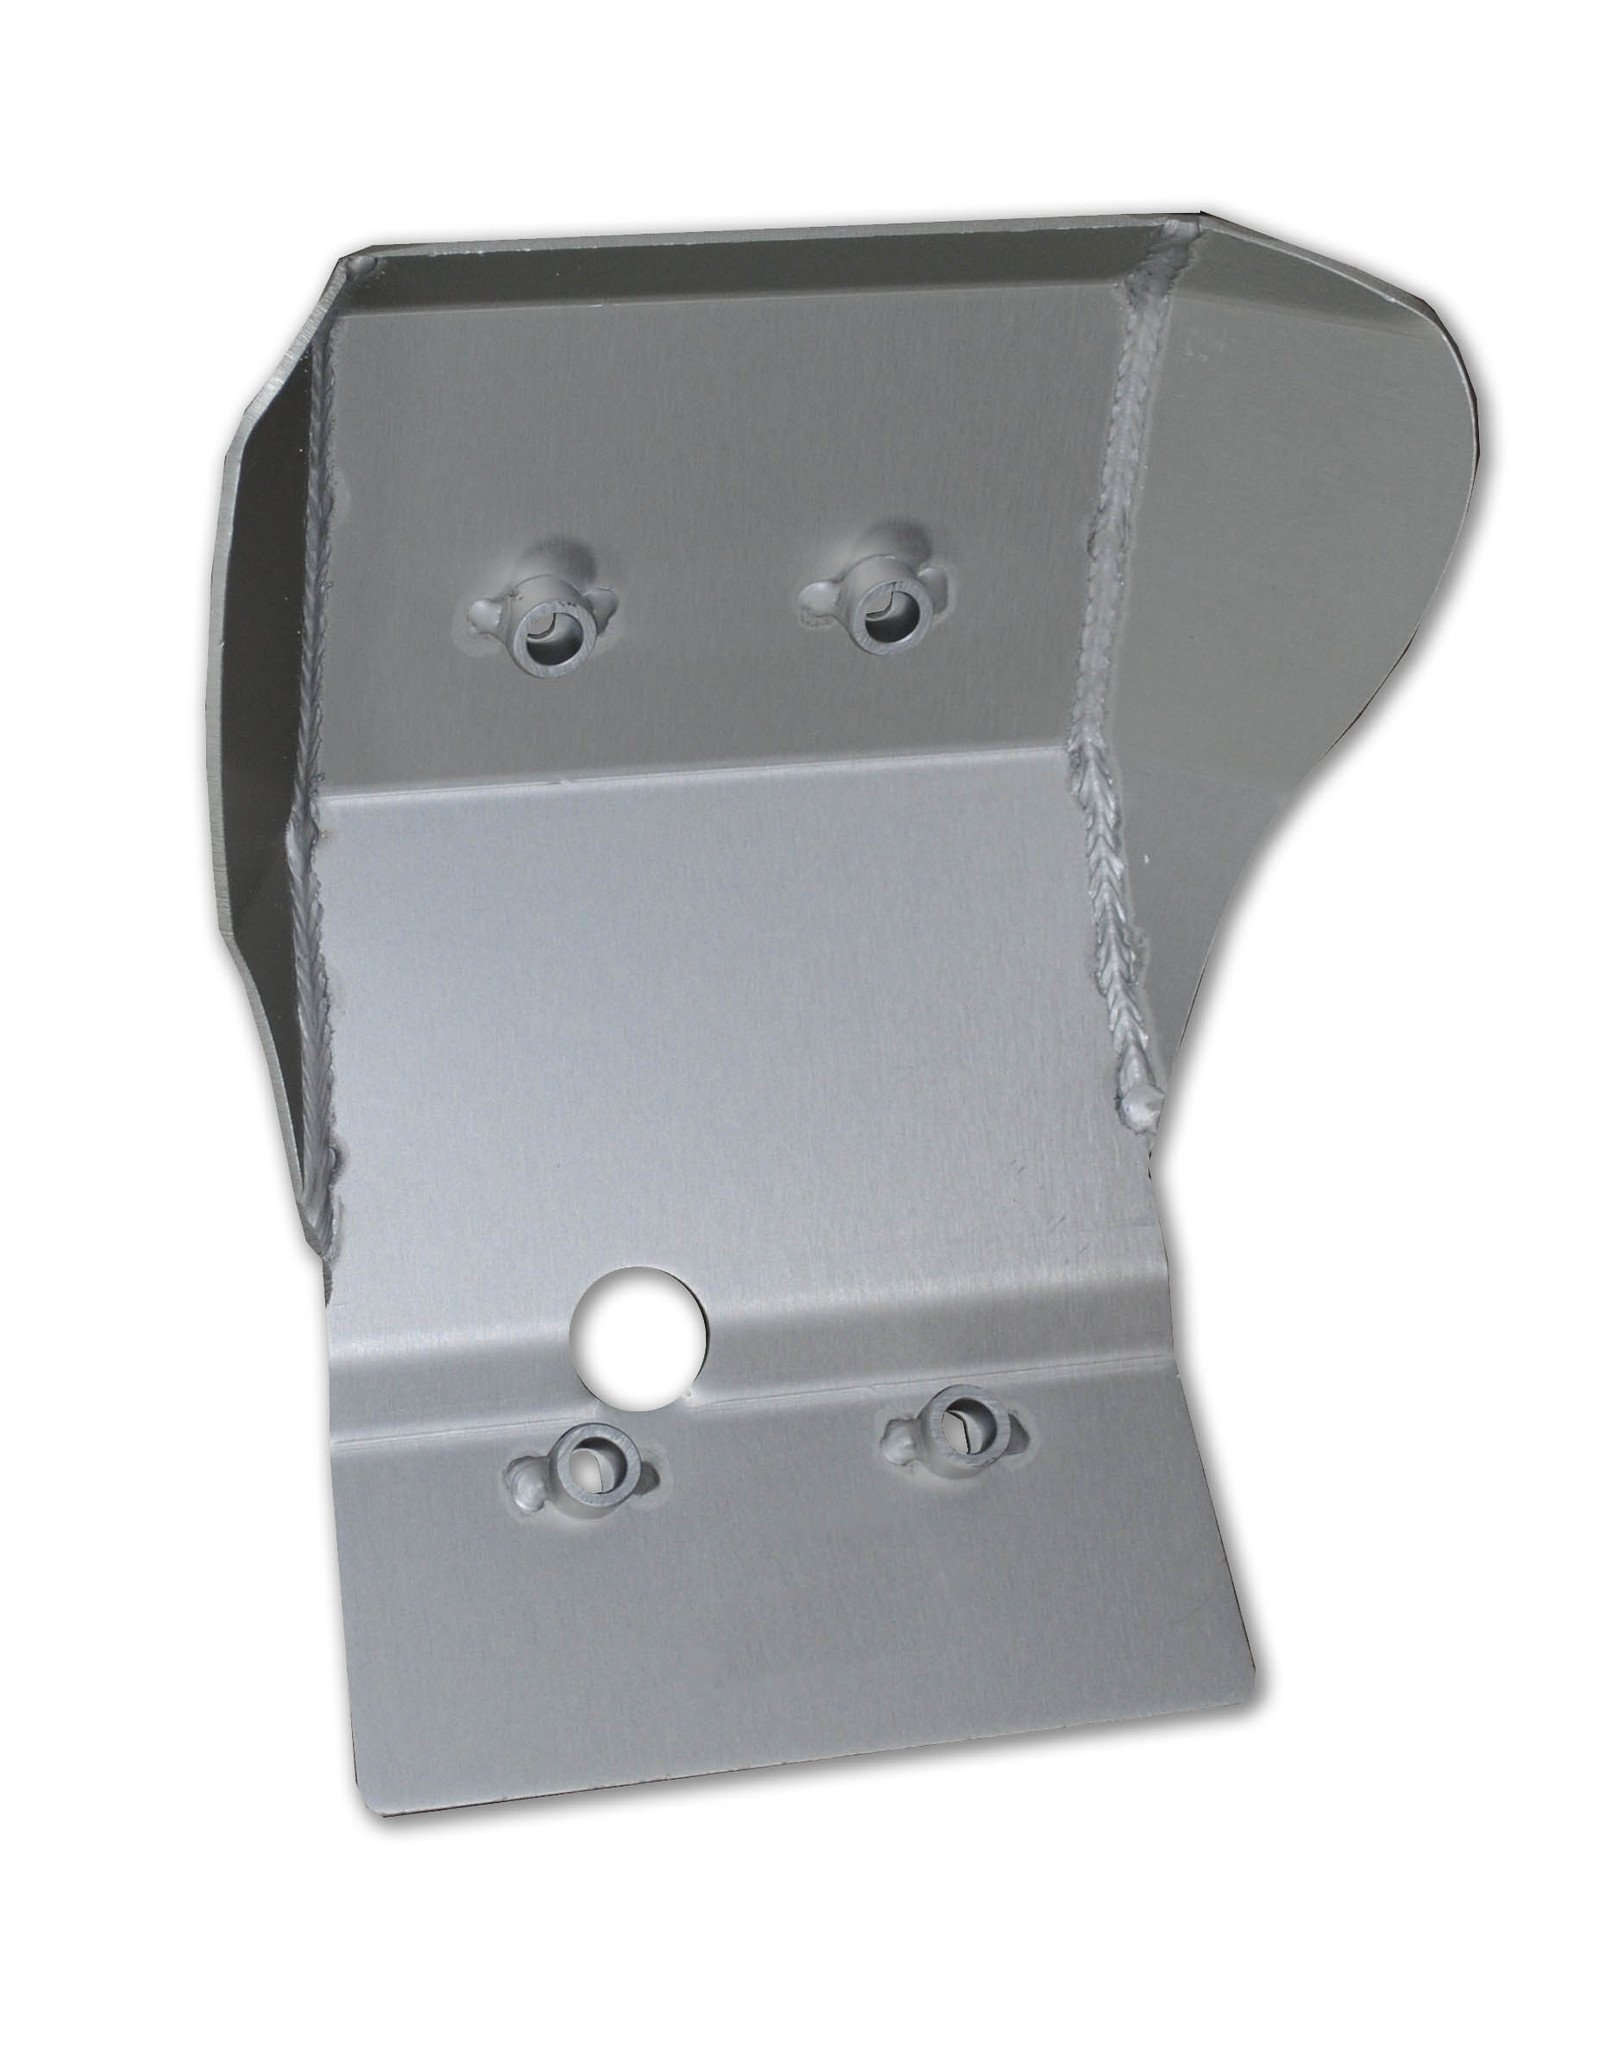 Yamaha XT 250 Full Protection Skid Plate Constructed with 3/16'' 5052 H-32 Aluminum. All mounting hardware included. by Ricochet for 2008, 2009, 2010, 2011, 2012, 2013, 2014, 2015, 2016, 2017,2018Model